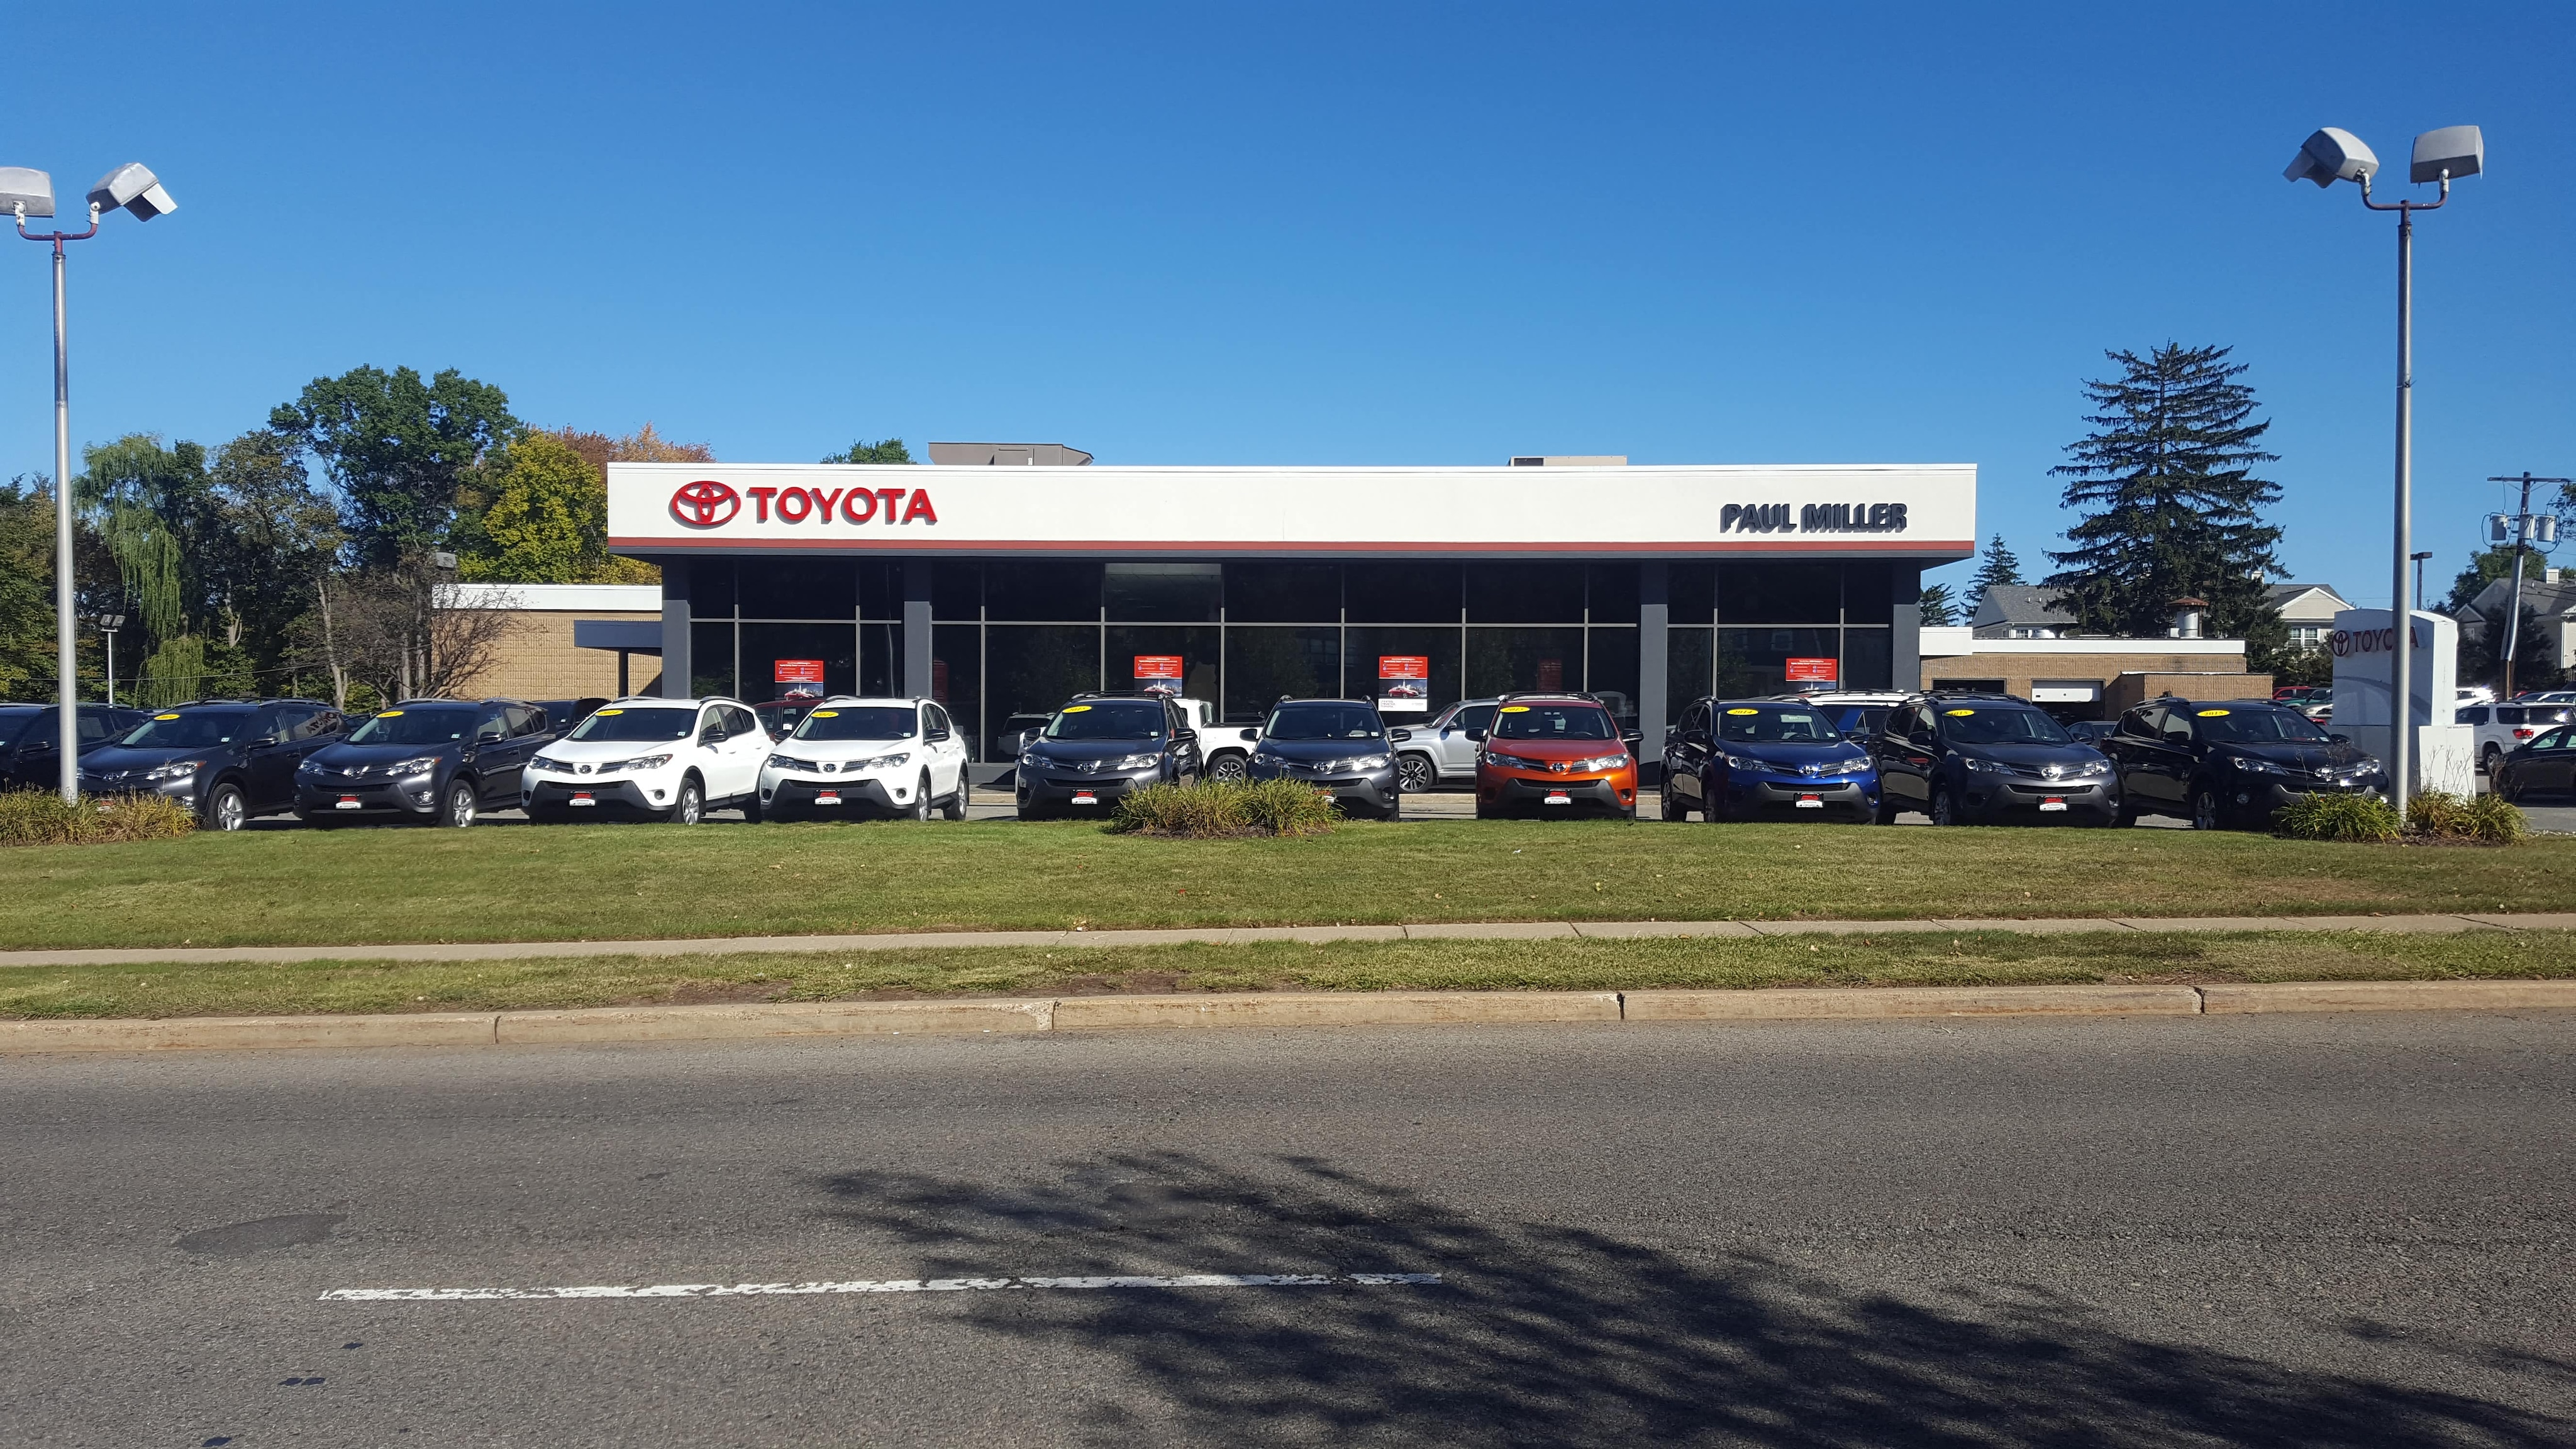 Toyota Dealer Nj >> Nj Toyota Dealer About Paul Miller Toyota Of West Caldwell